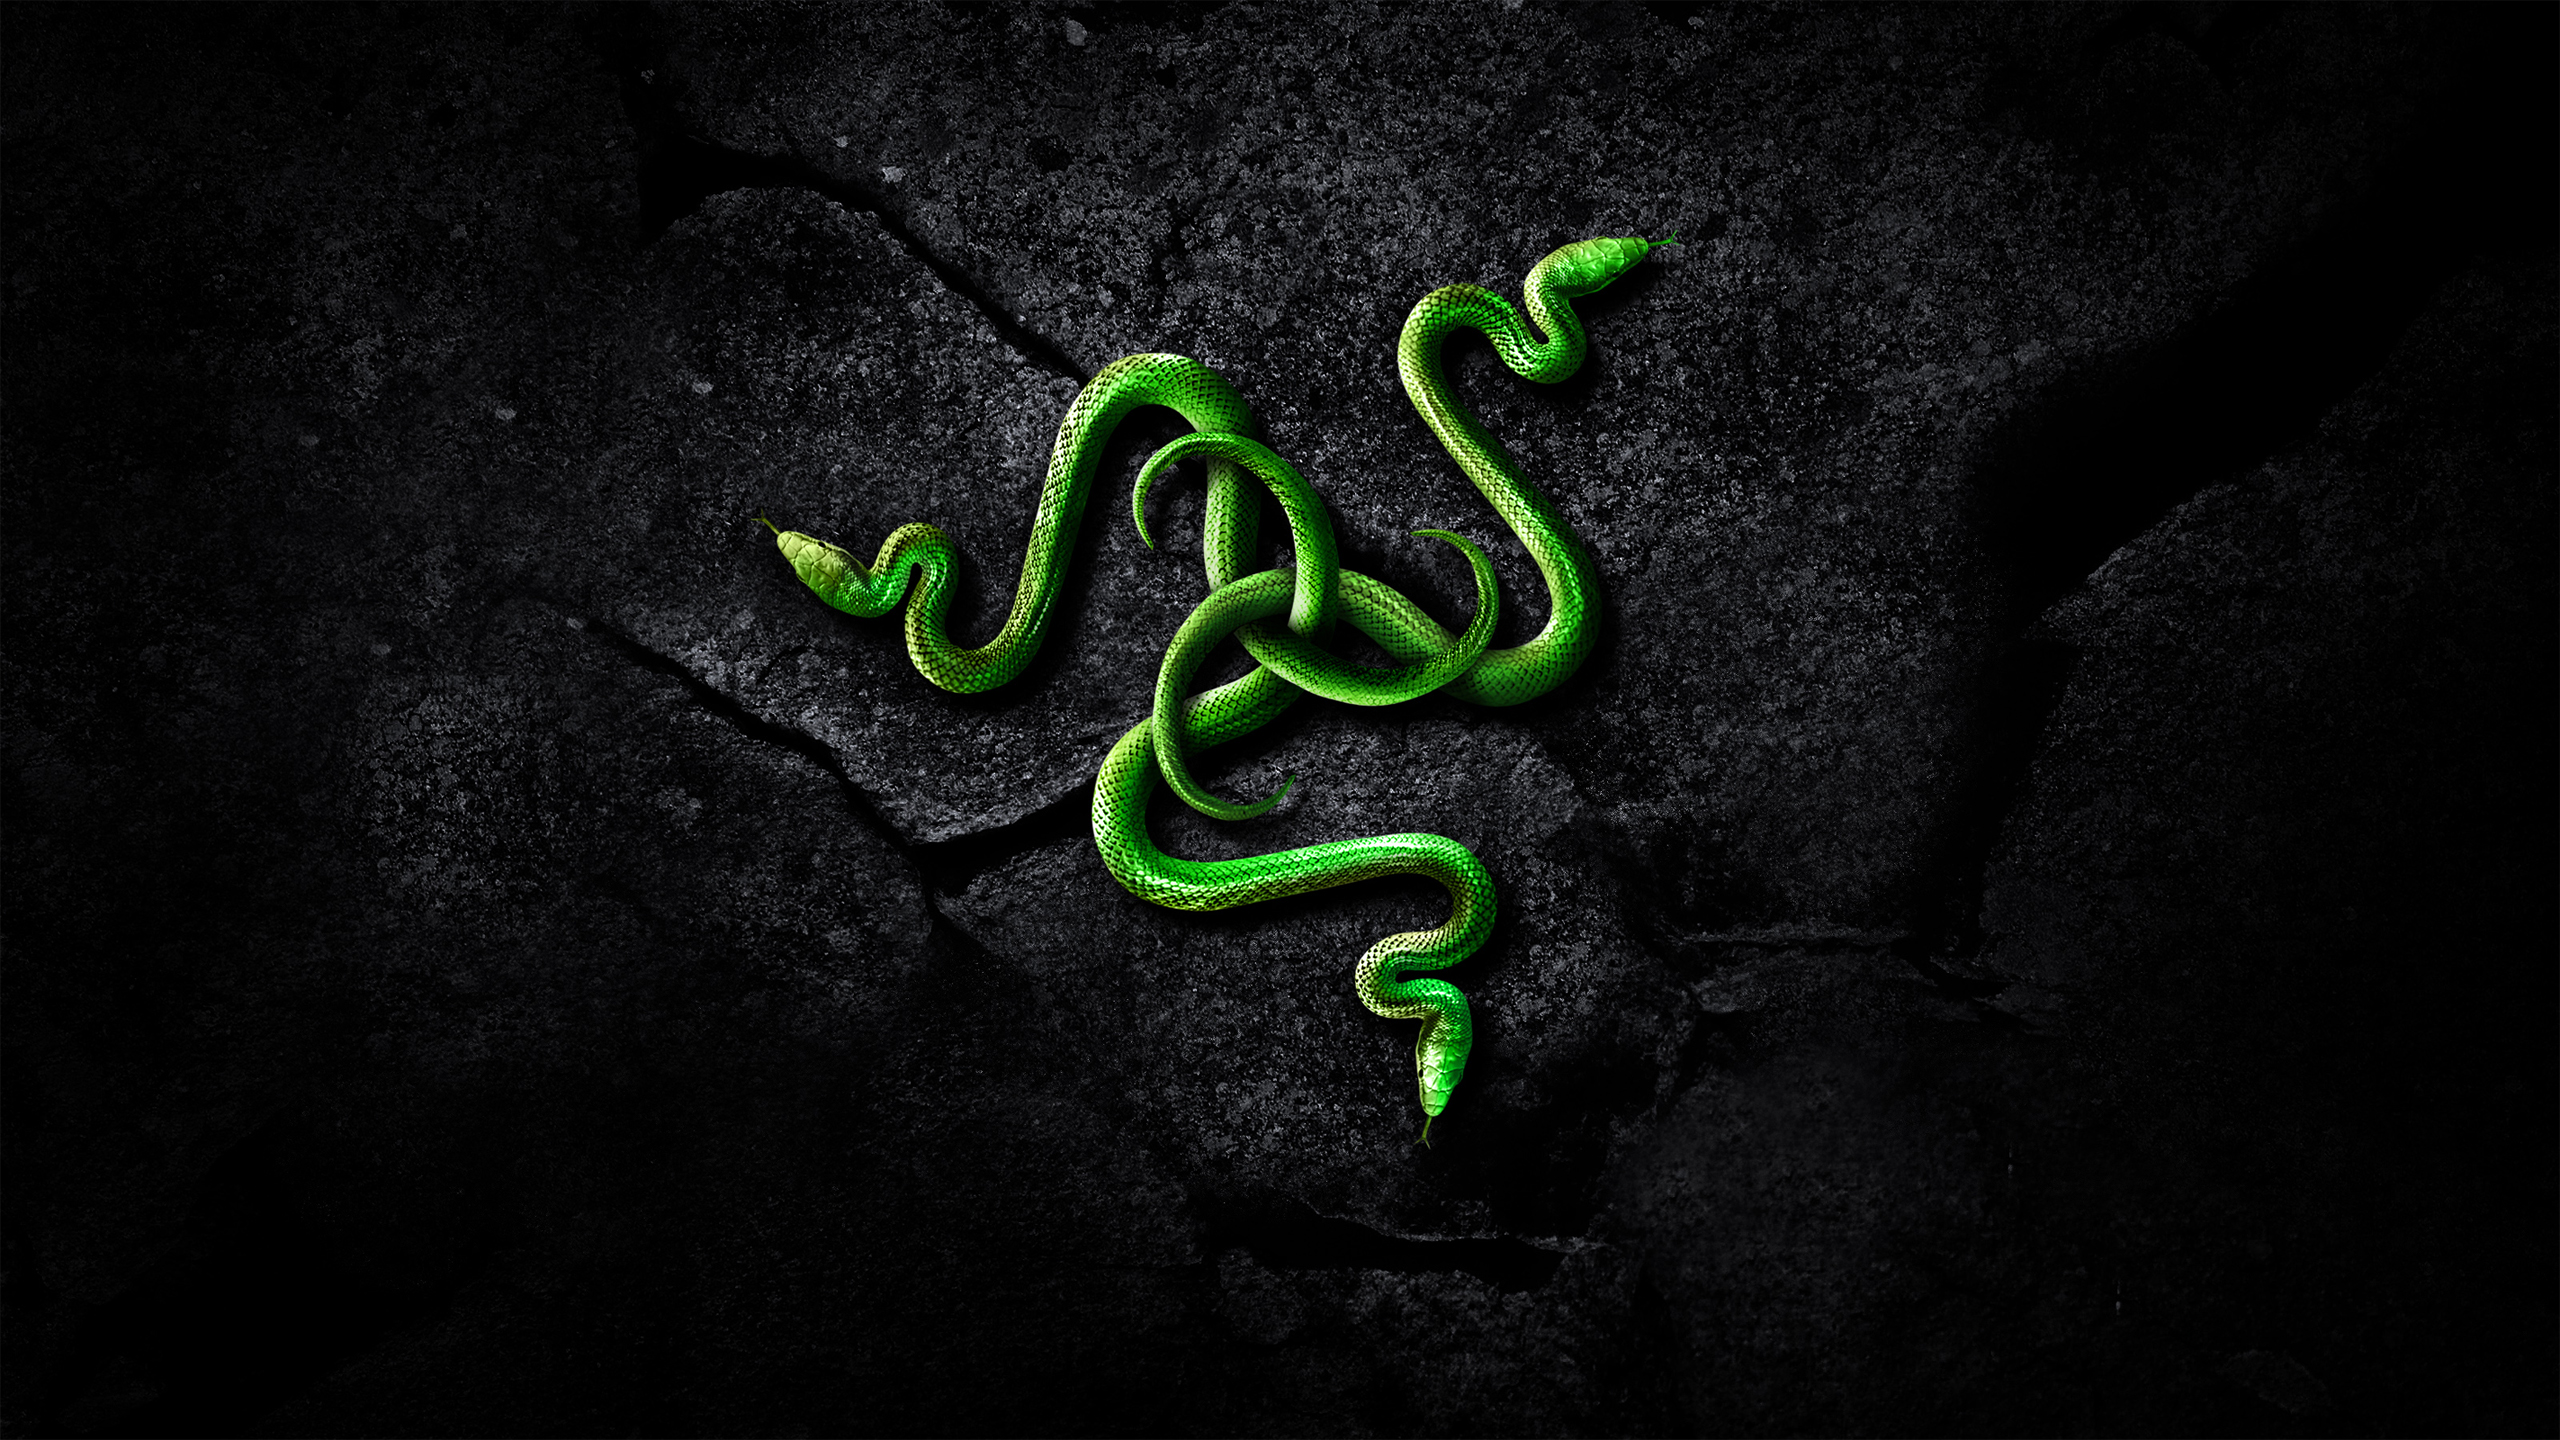 Razer Backgrounds on Wallpapers Vista